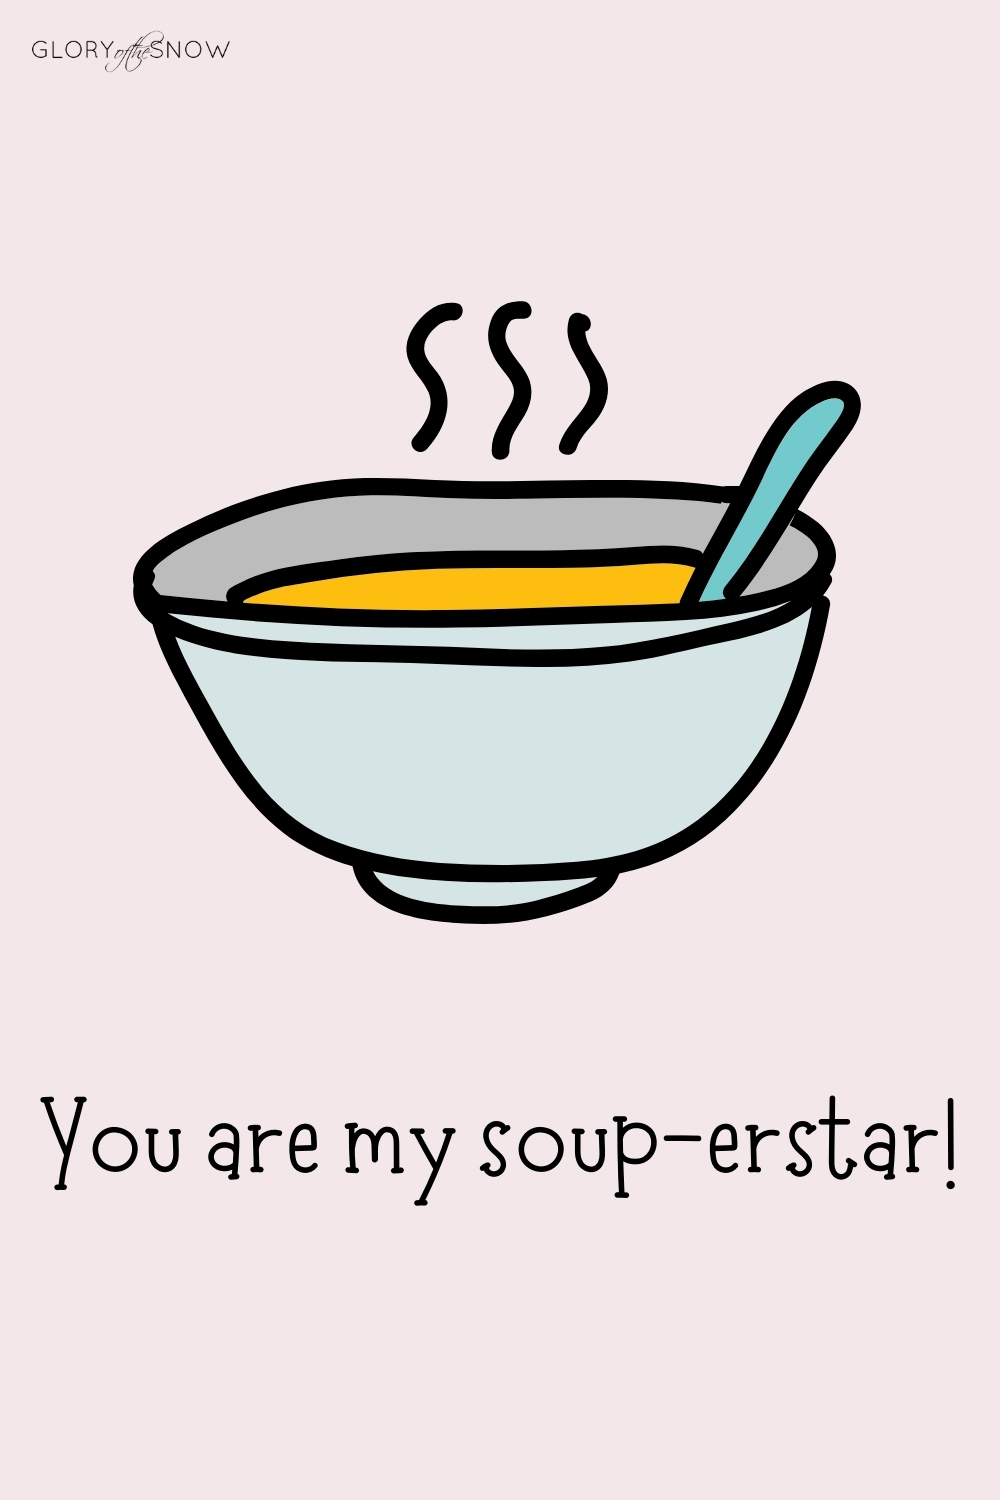 THE BEST SOUP PUNS AND JOKES